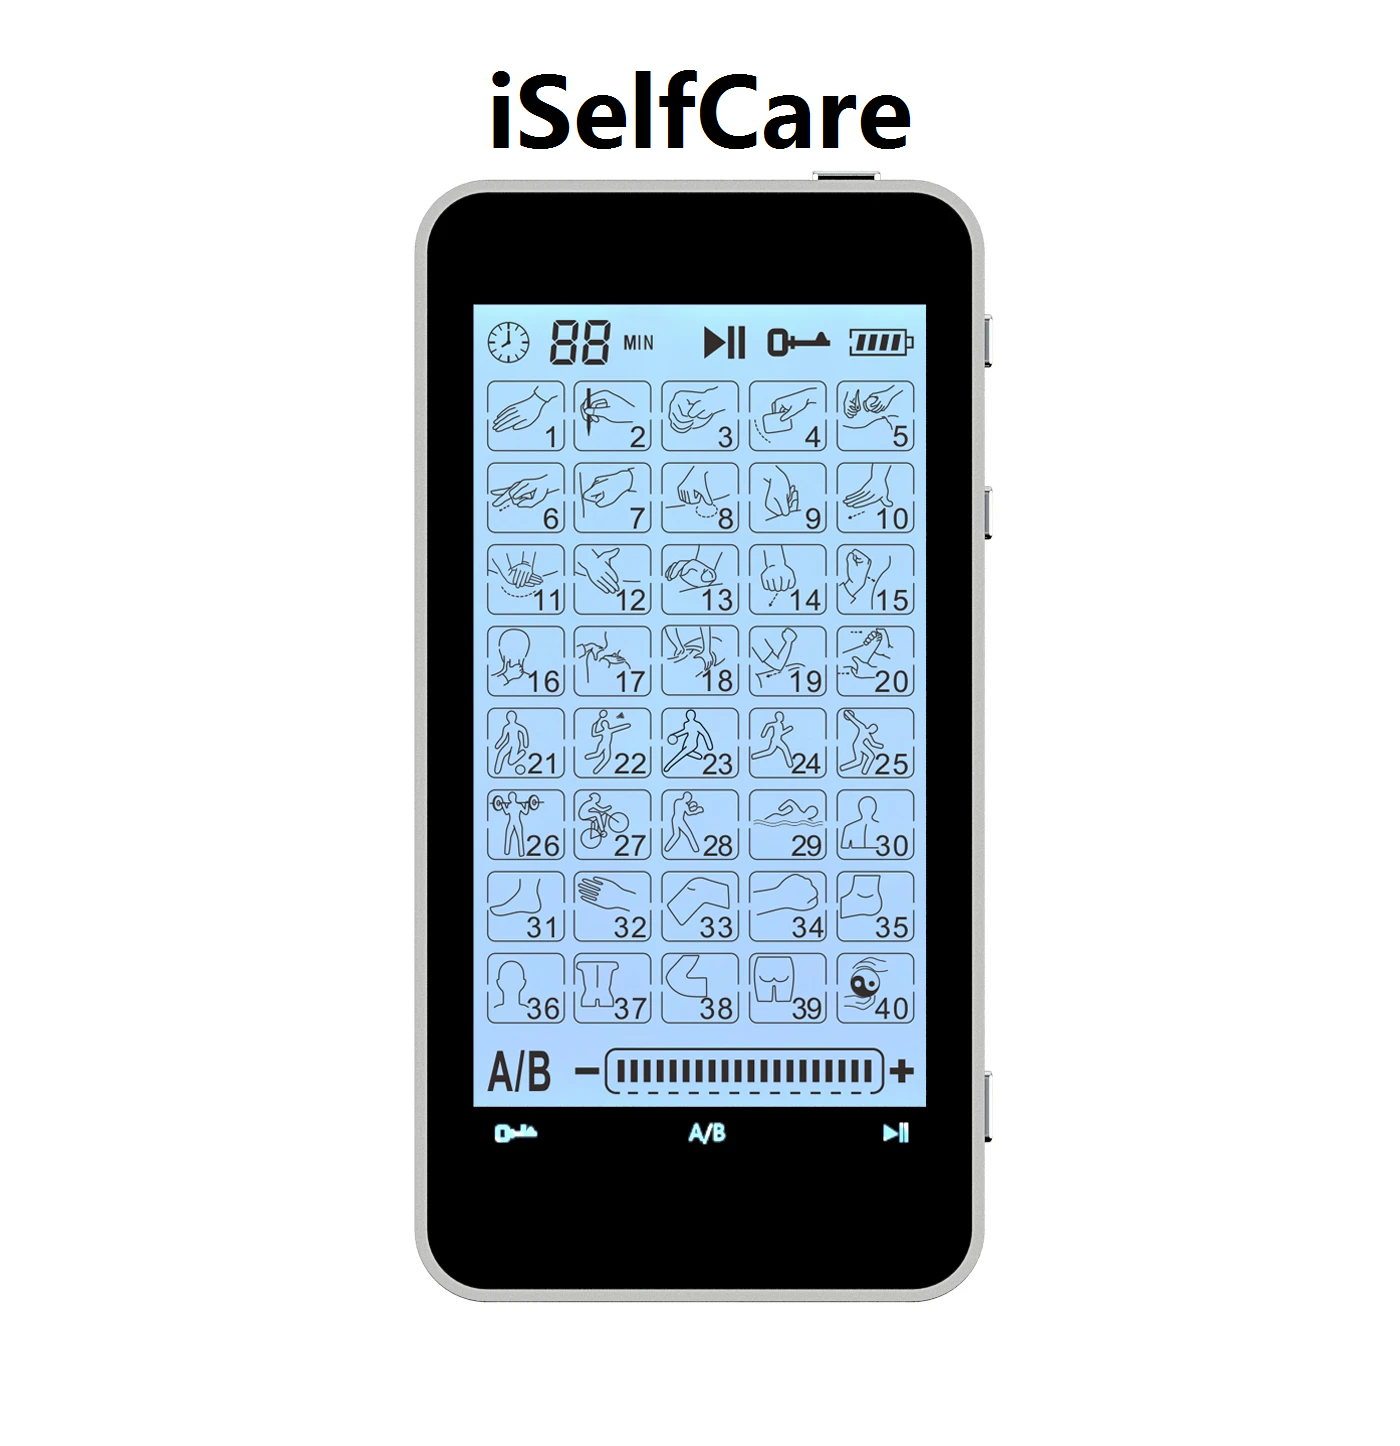 2020 Version 40 Modes T40AB1 iSelfCare® TENS unit & Muscle Stimulator - 2 Year Warranty - HealthmateForever